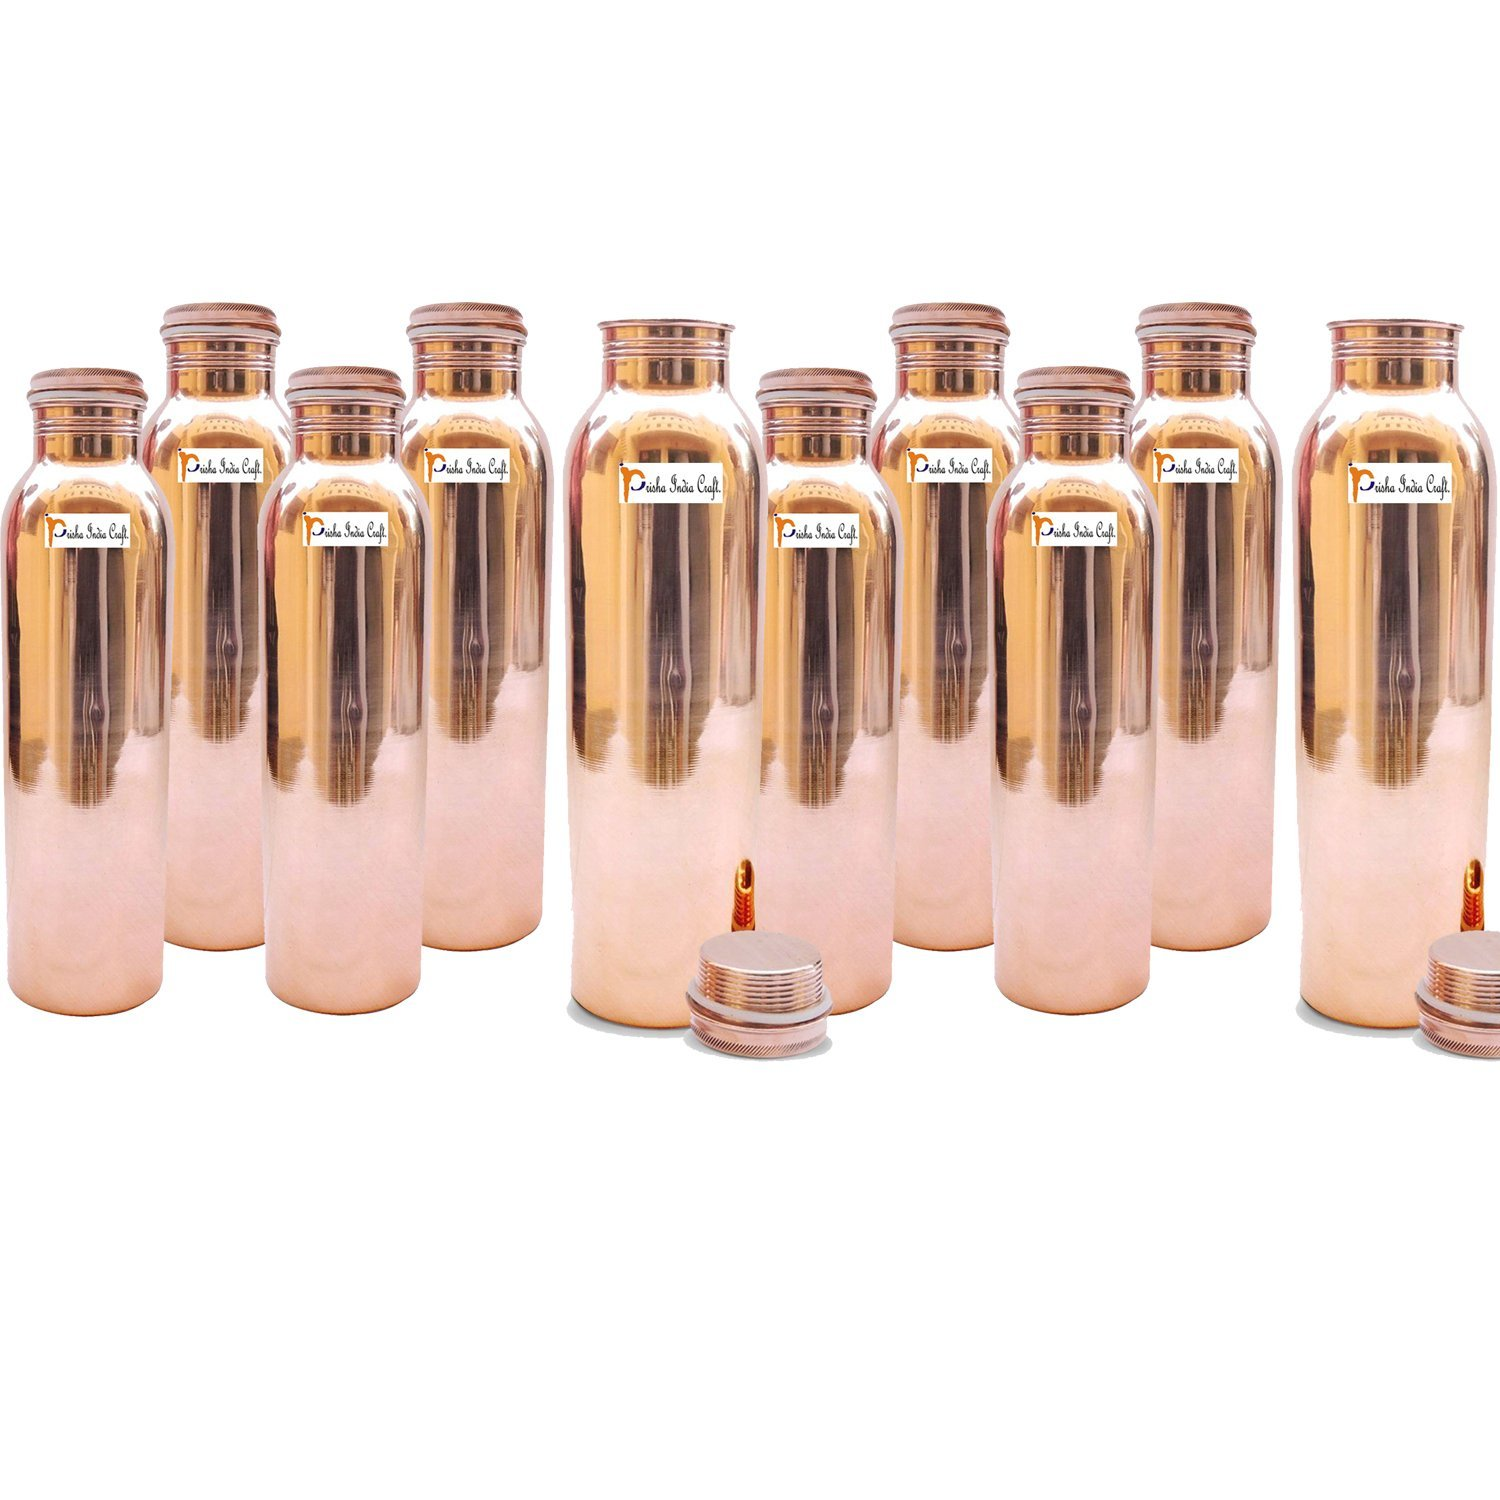 1000ml / 33oz - Set of 10 - Prisha India Craft ® Pure Copper Water Bottle for Health Benefits - | Joint Free, Handmade - Water Bottles - Handmade Christmas Gift